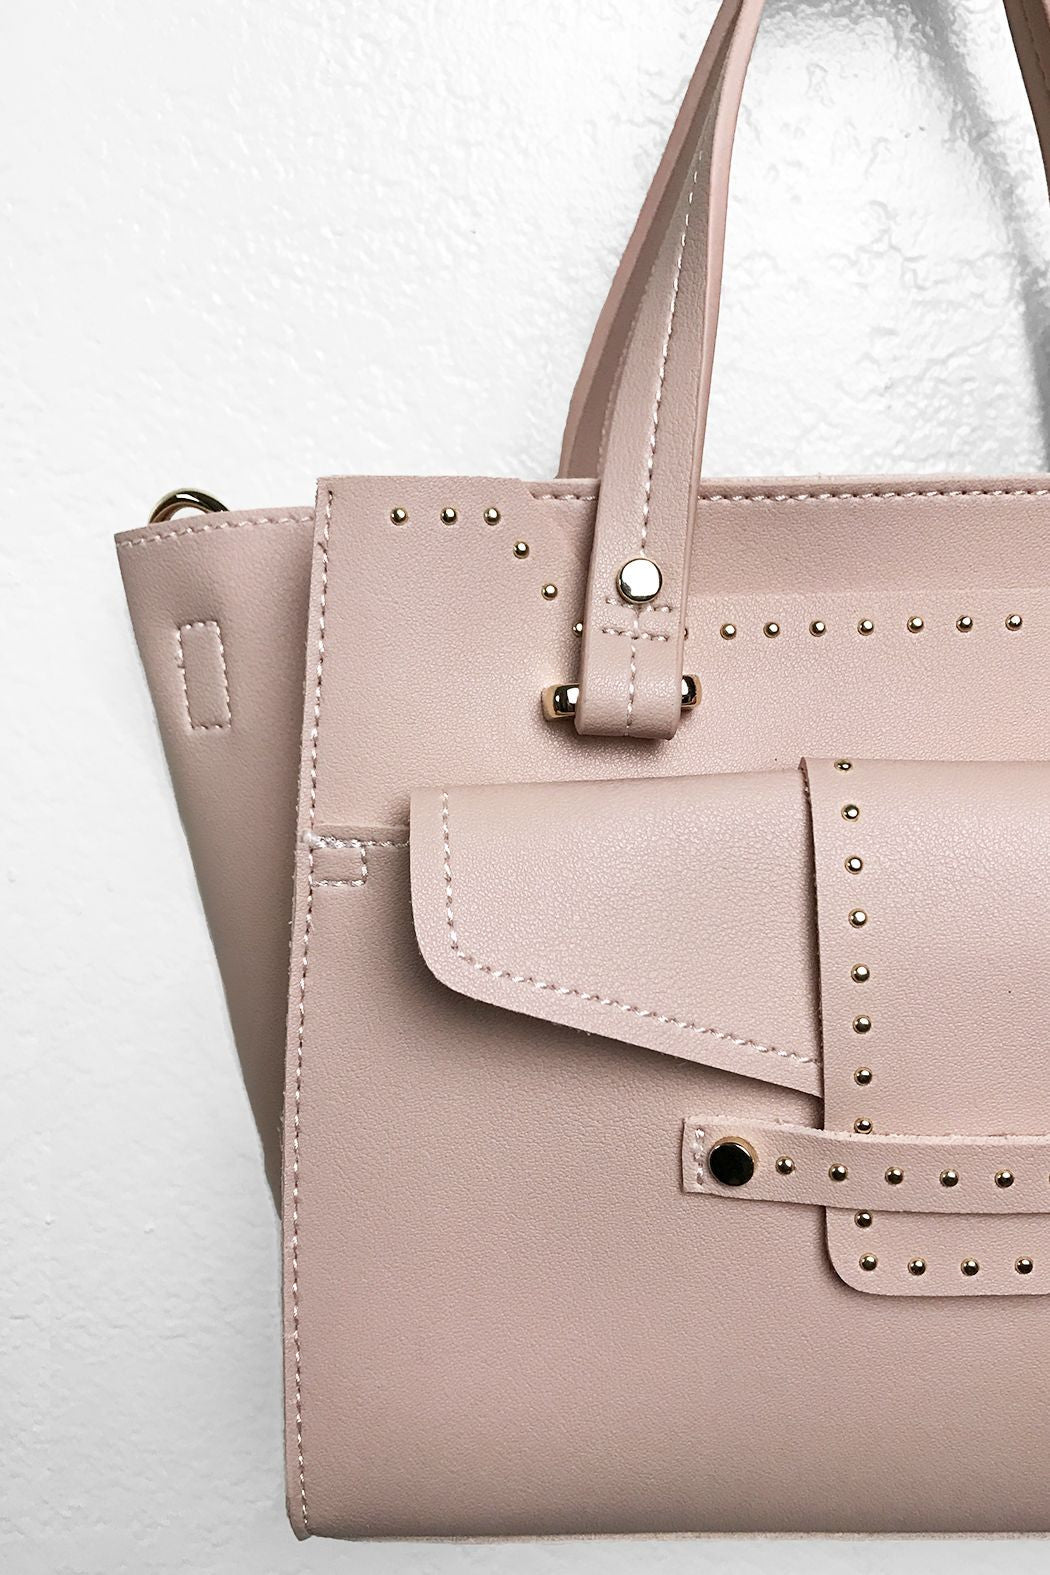 Studded Wing Woman Handbag - Snatched